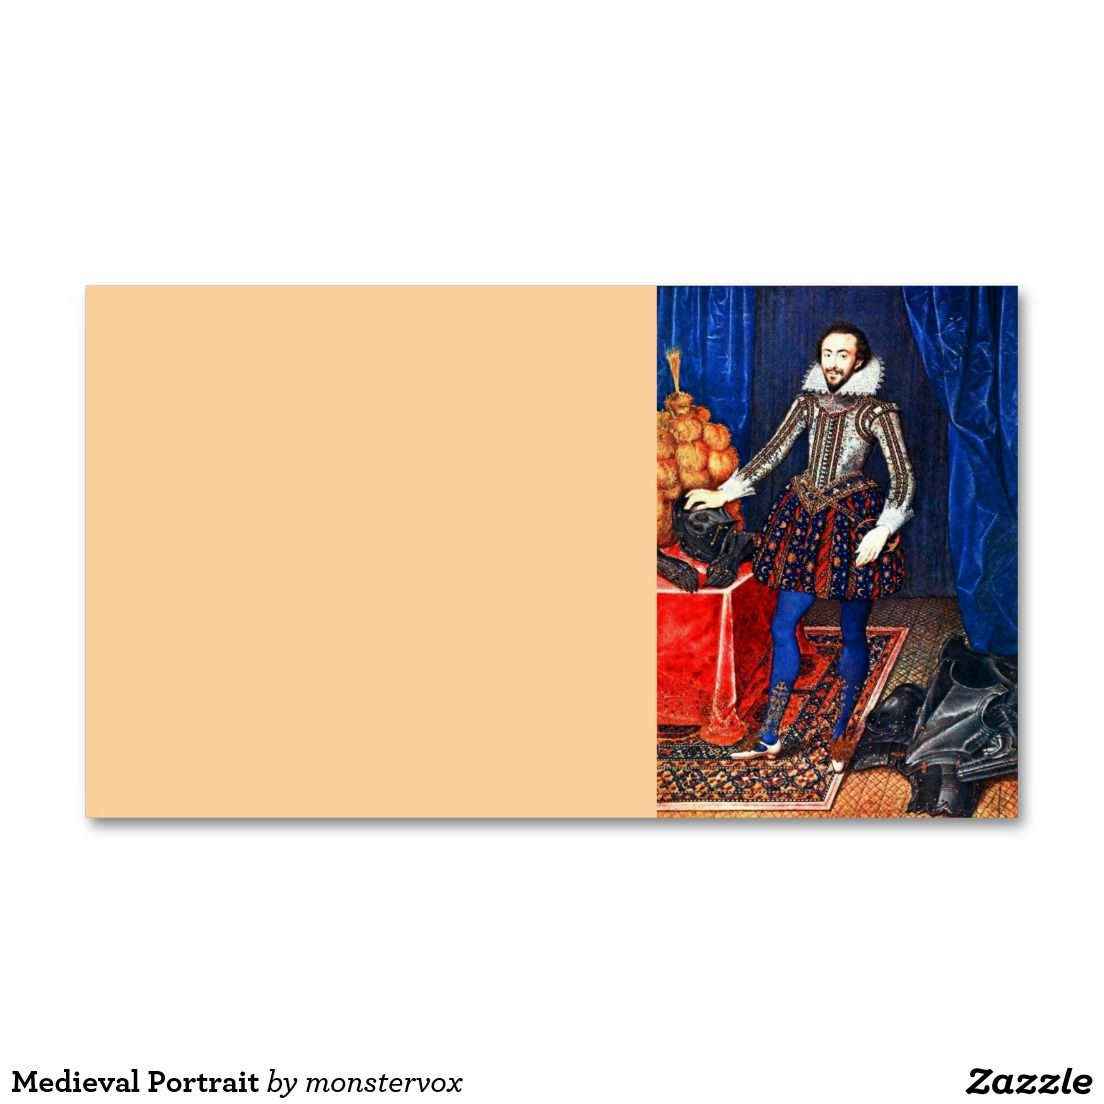 Medieval Portrait Business Card | Business cards, Medieval and Portraits